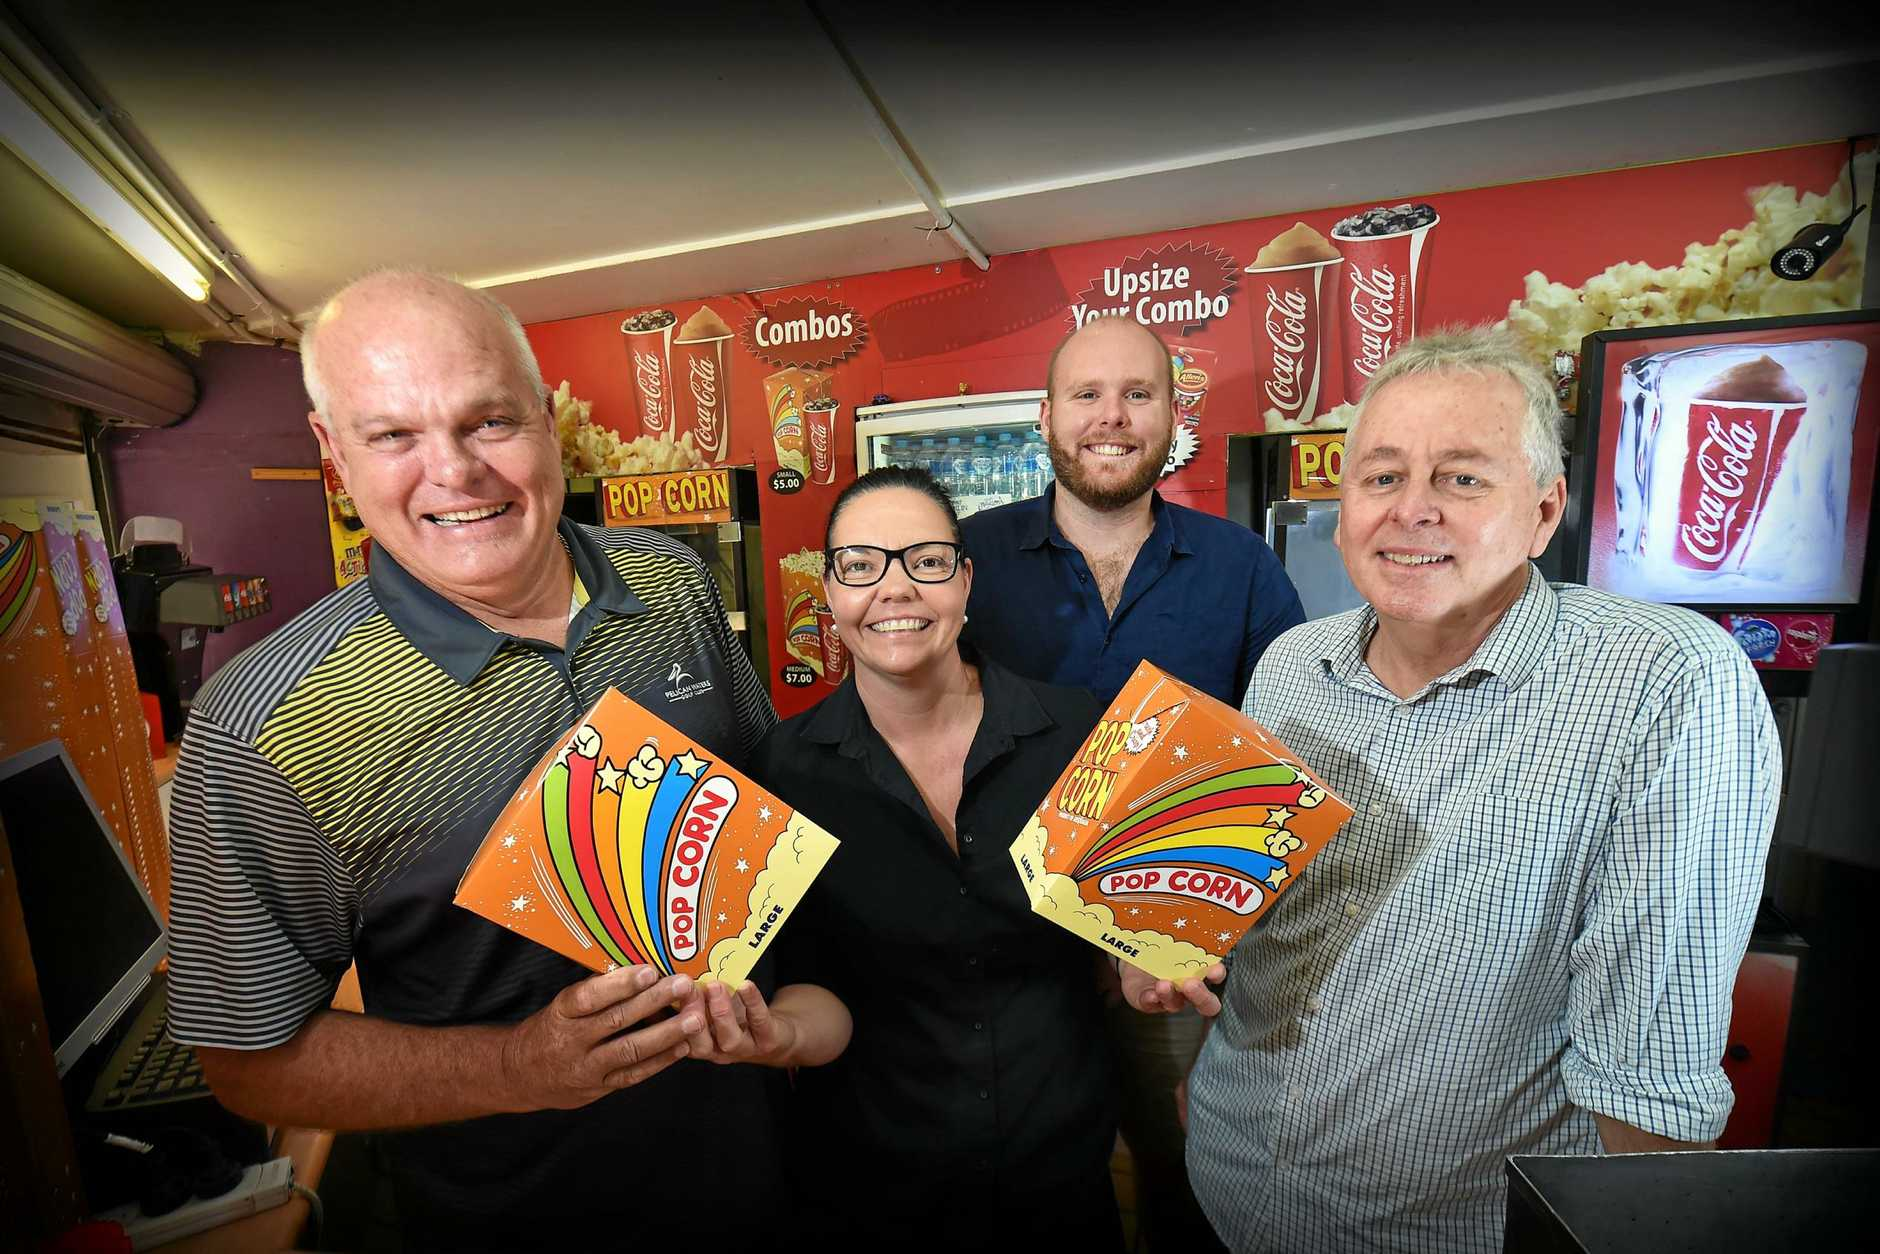 HAPPY: Owner of Big Screen Cinemas Caloundra Nick Struik (left) says the business has been thriving for 22 years, despite constant changes and new cinema developments cropping up. With Nick are Mandy McClarence, Anthony Struik and Murray Power.